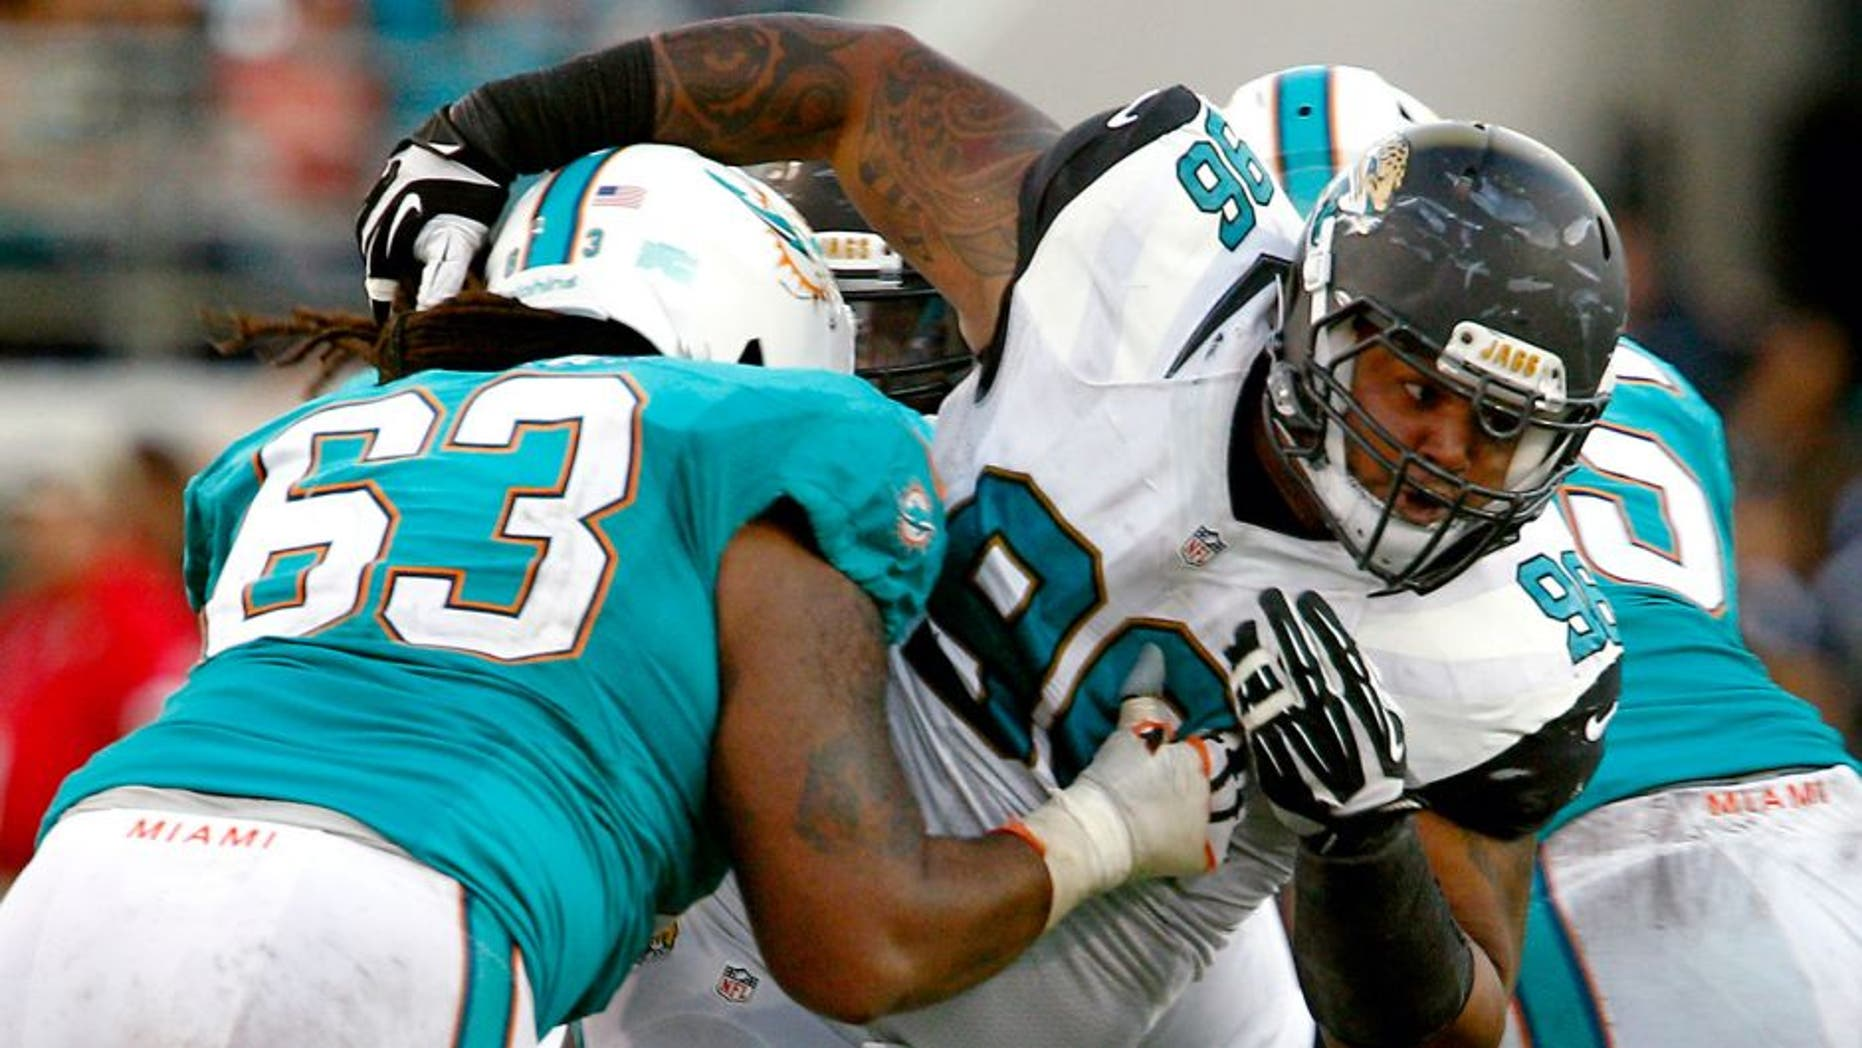 Sep 20, 2015; Jacksonville, FL, USA; Jacksonville Jaguars defensive tackle Michael Bennett (96) is held by Miami Dolphins offensive guard Dallas Thomas (63) during the second half of an NFL Football game at EverBank Field. The Jacksonville Jaguars won 23-20. Mandatory Credit: Reinhold Matay-USA TODAY Sports